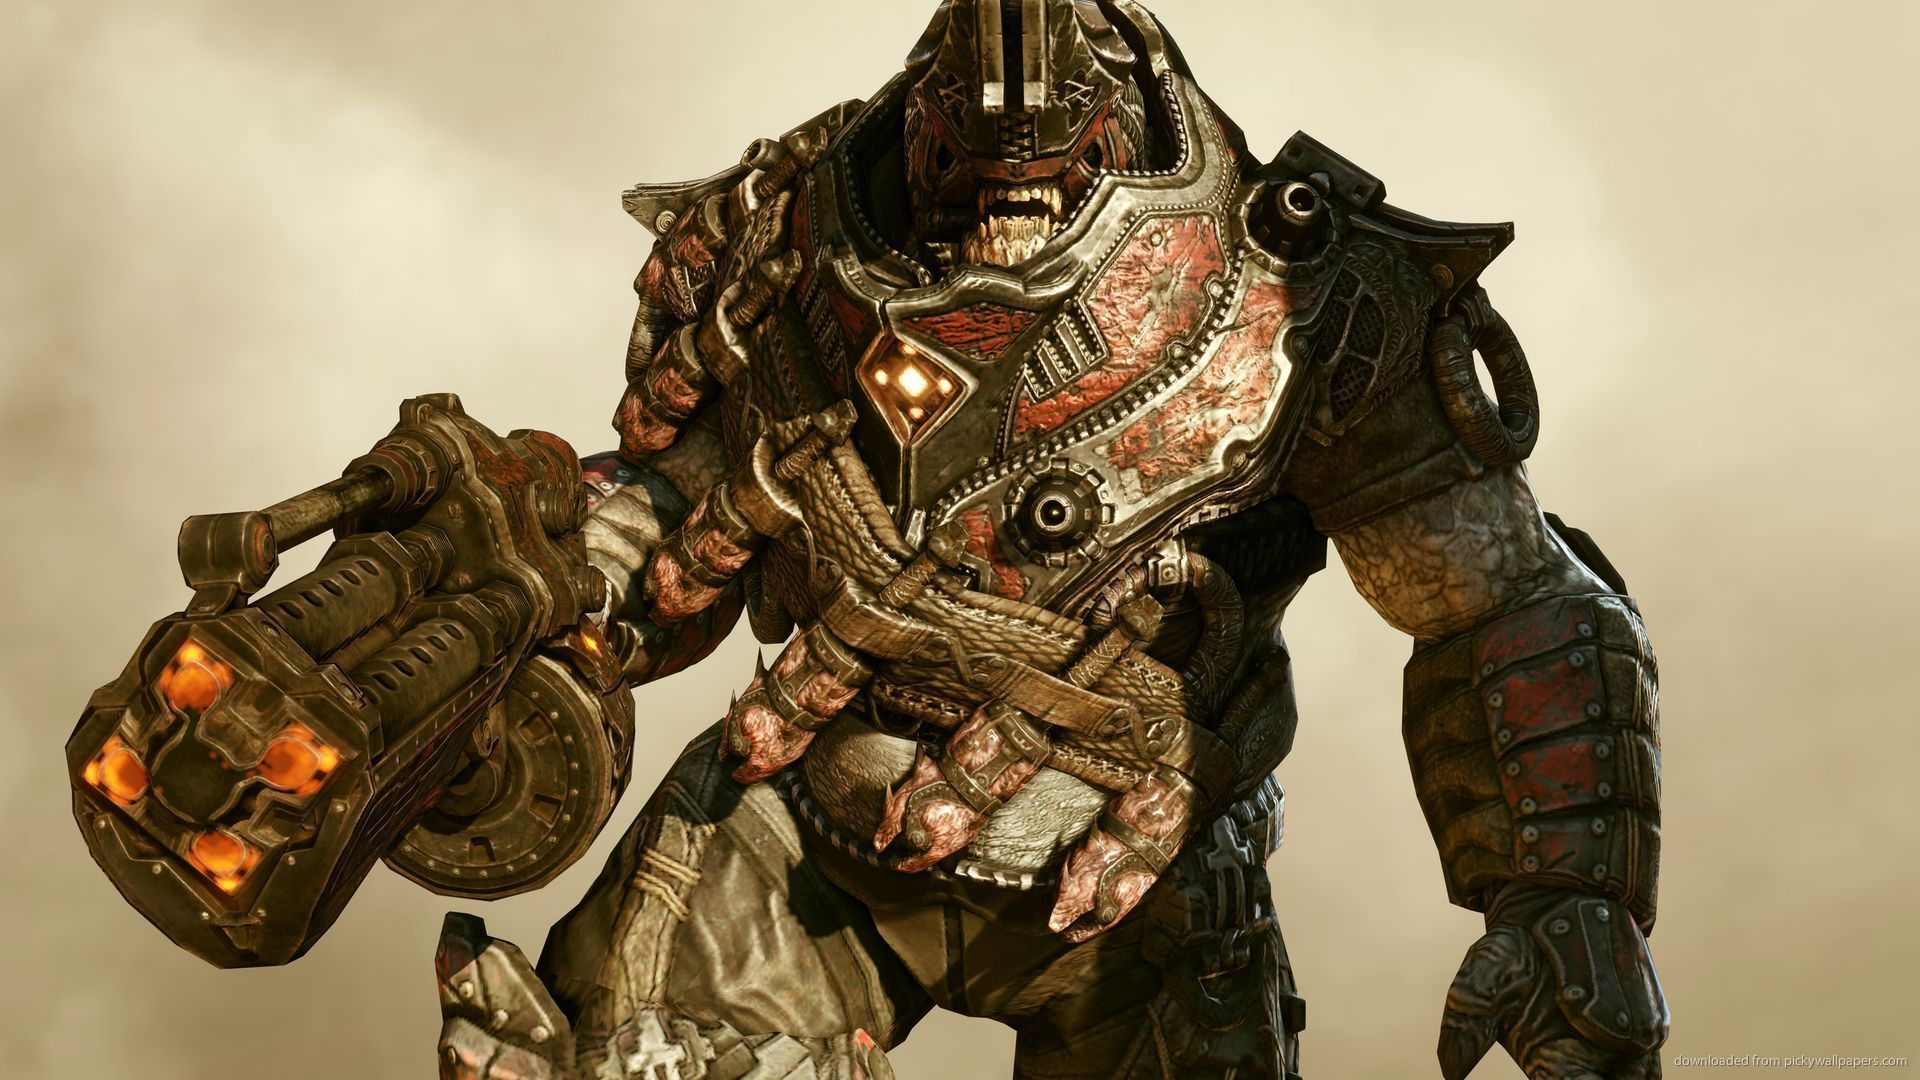 Image Result For Gears Of War Locust Wallpaper Hd Gears Of War